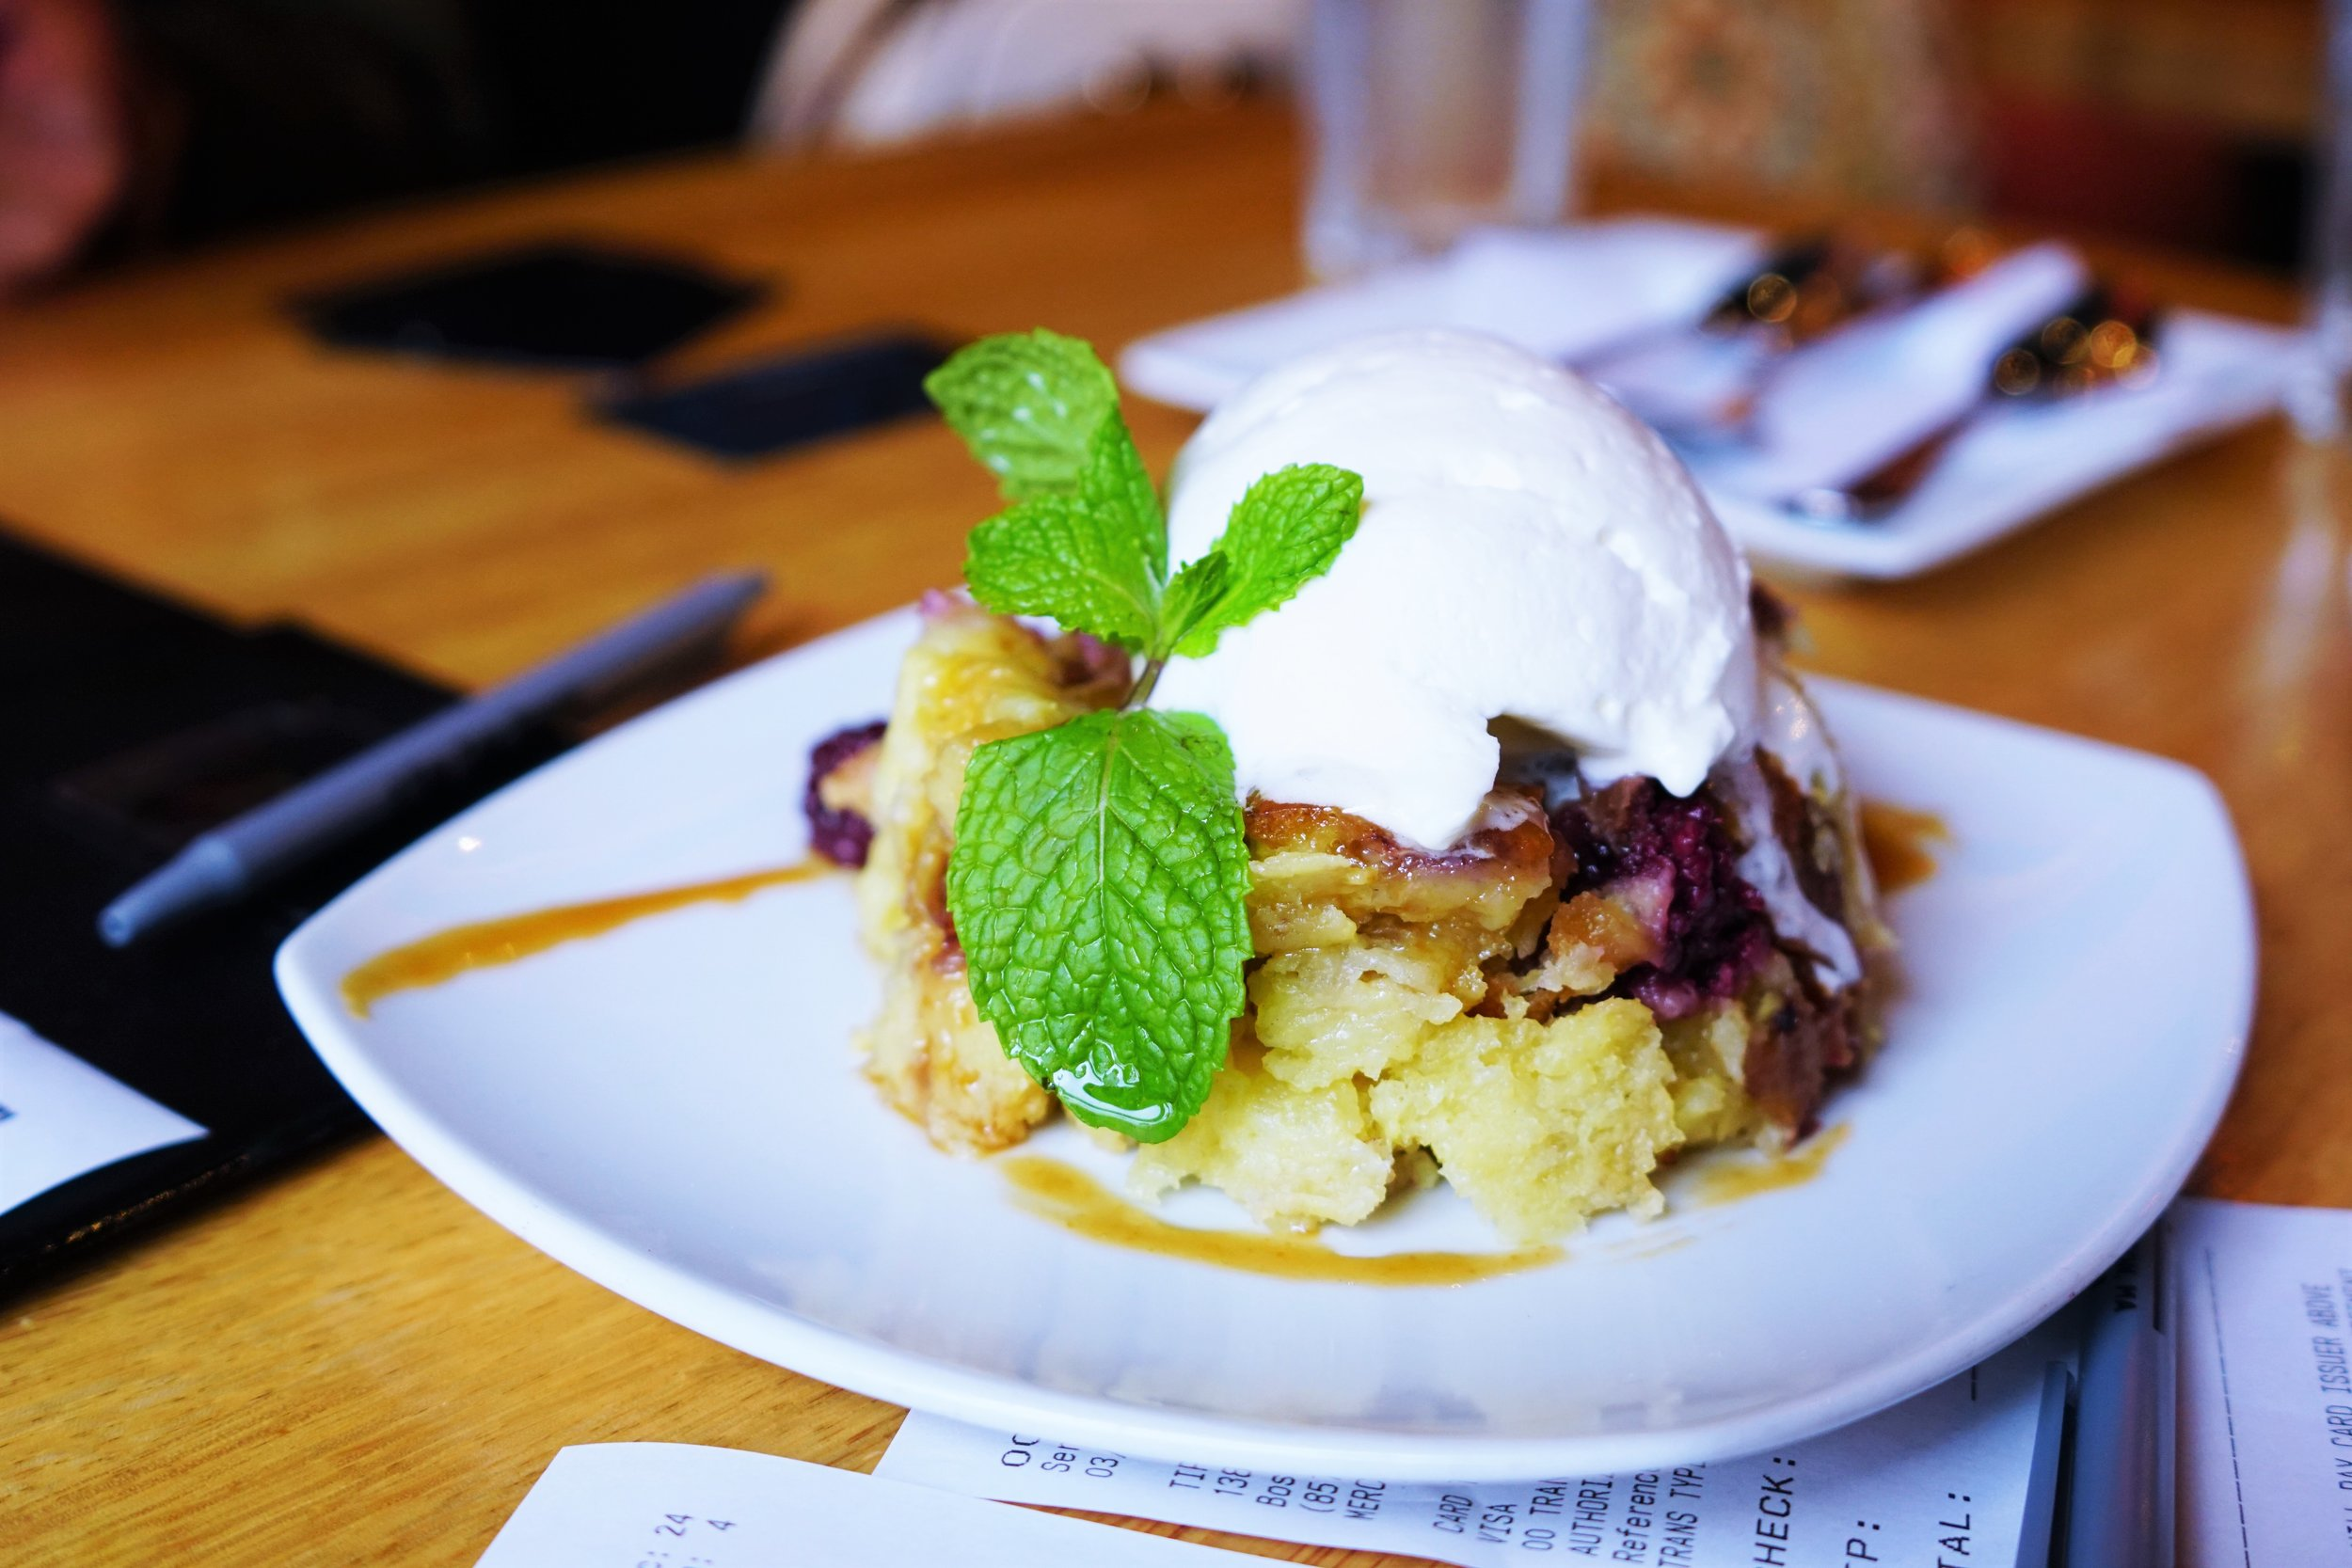 Blackberry Bread Pudding with Brioche, White Chocolate, Caramel, and Cinnamon Whipped Cream at Tip Tap Room in Boston